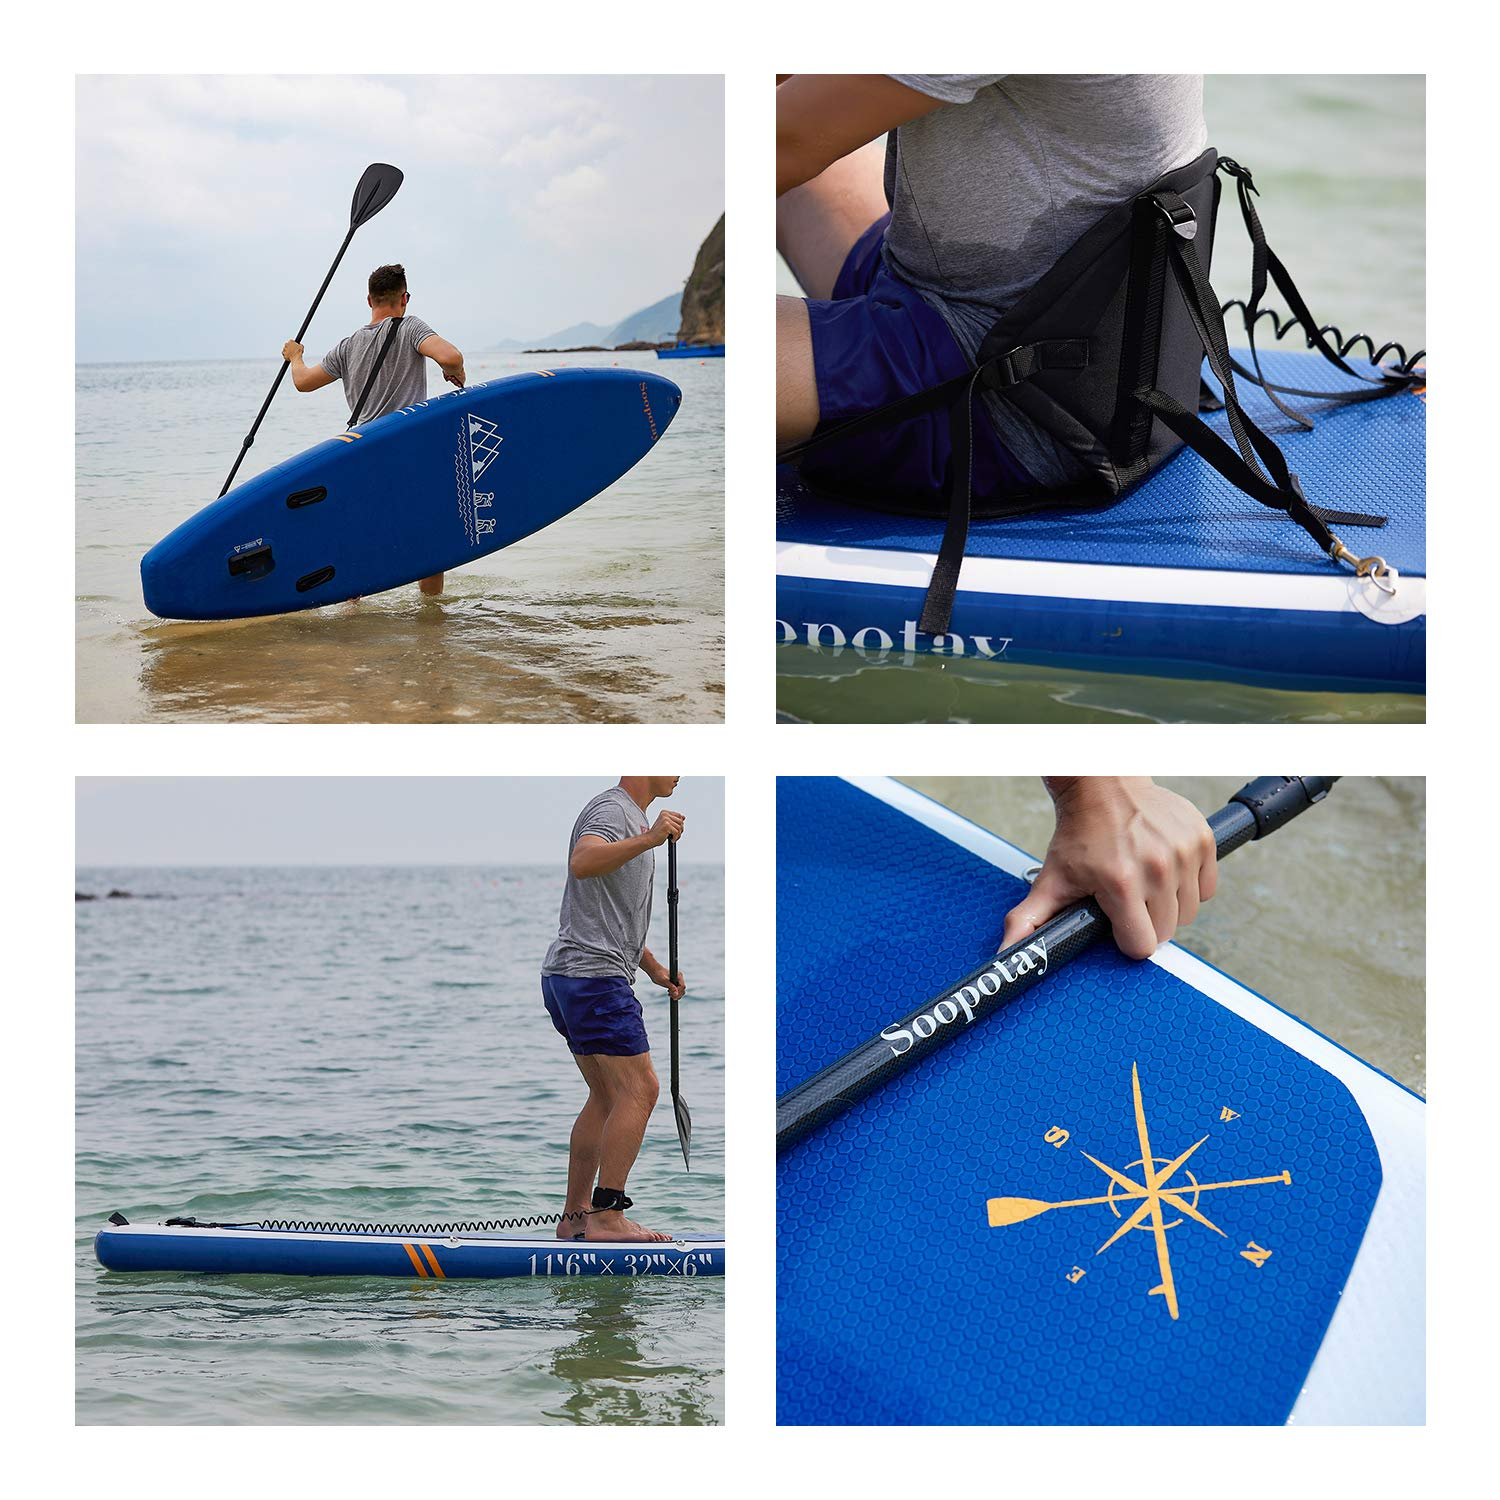 Inflatable SUP Board, Inflatable SUP Kayak, iSUP Package with All Accessories (Touring-Navy Blue-11'6'' x 32'' x 6'') by Soopotay (Image #4)